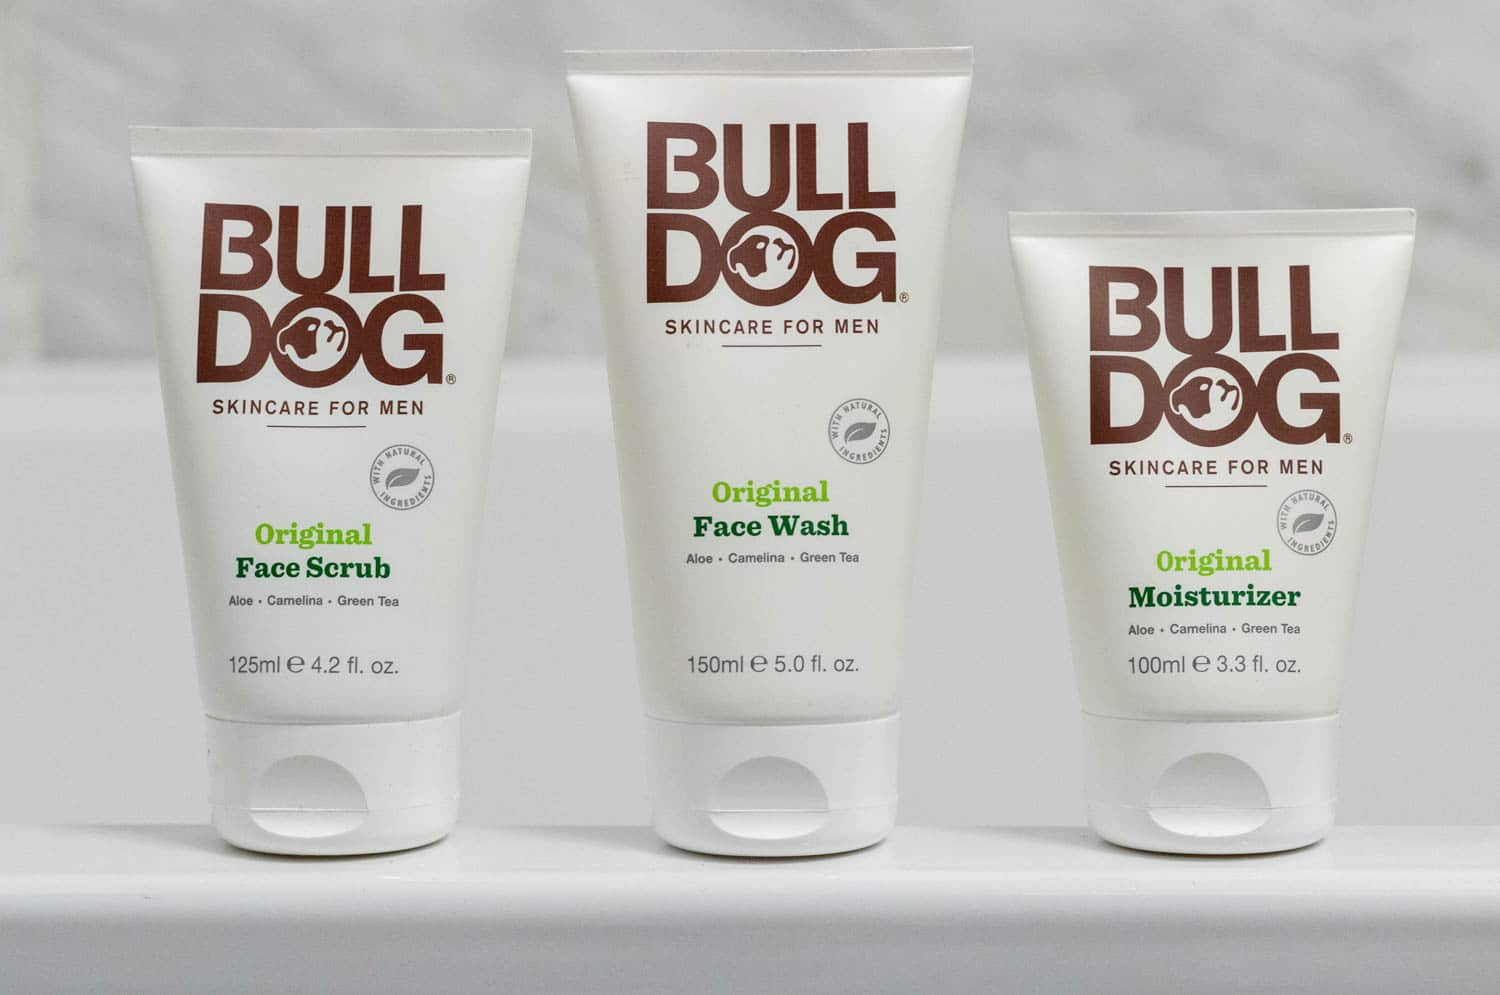 Bulldog Skincare Review - A Detailed Look at the Full Face Kit